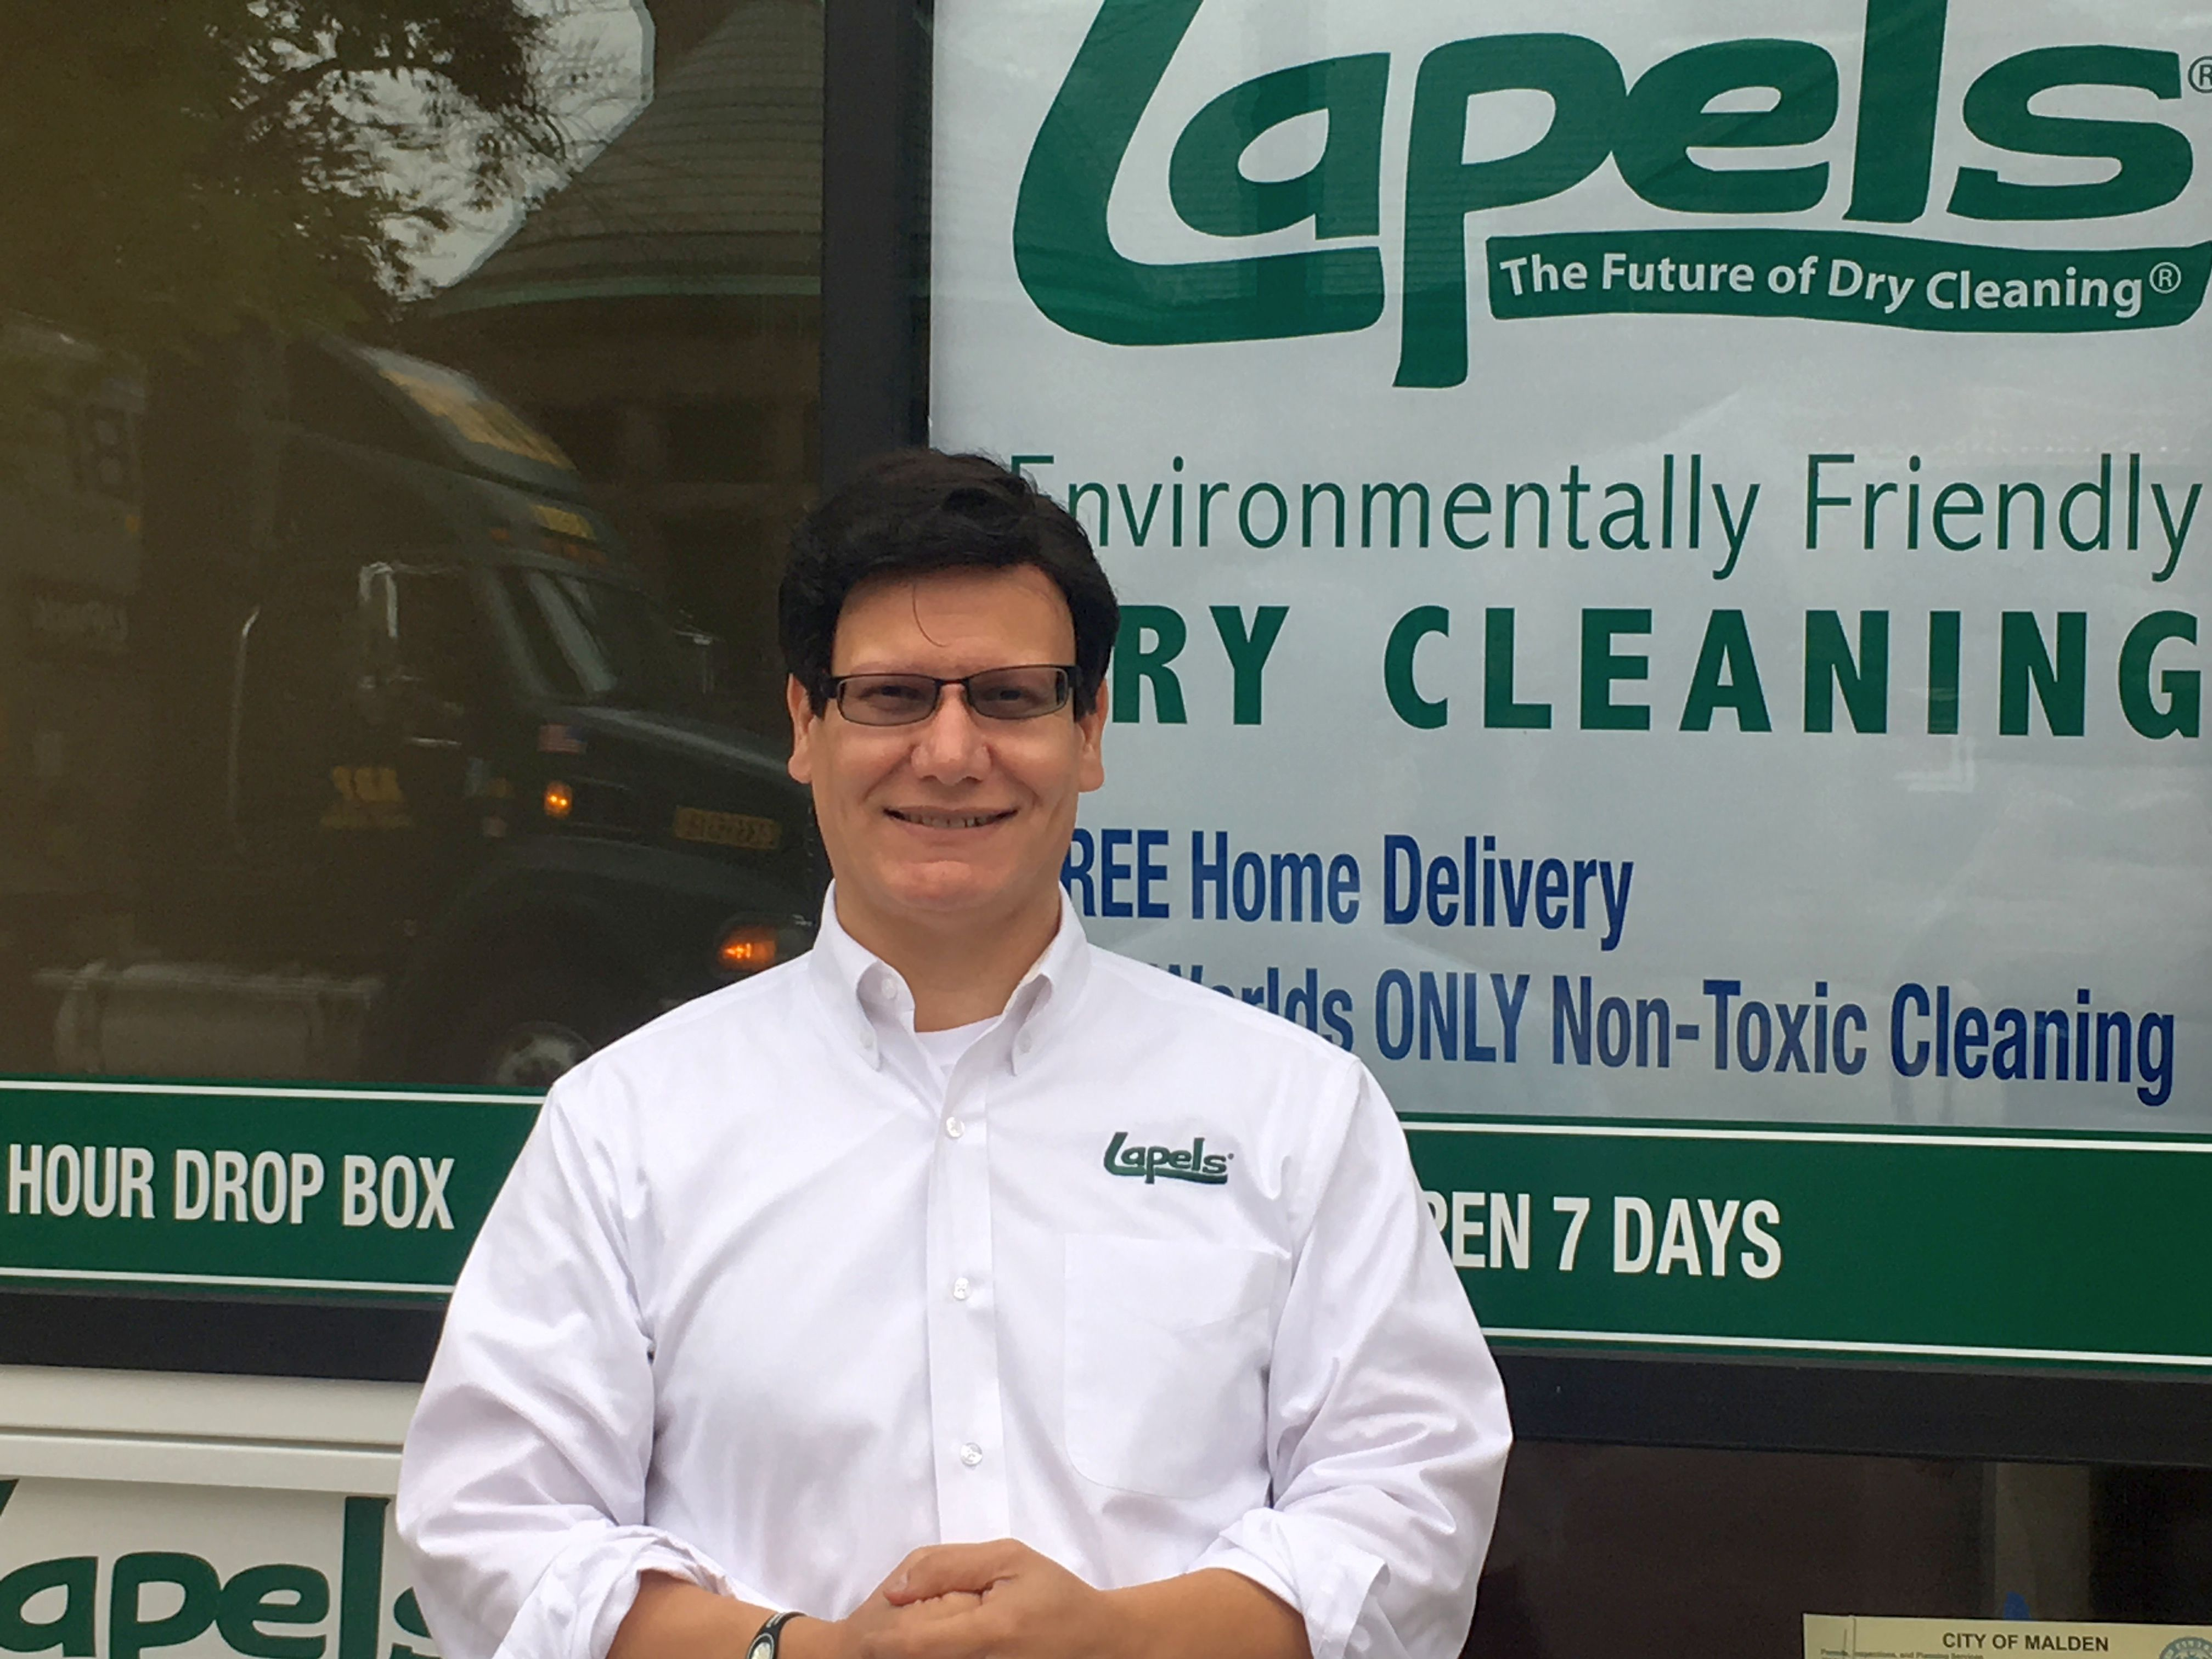 The Future of Dry Cleaning comes to Malden. Lapels Dry Cleaning opens at 480 Main Street, Malden, MA